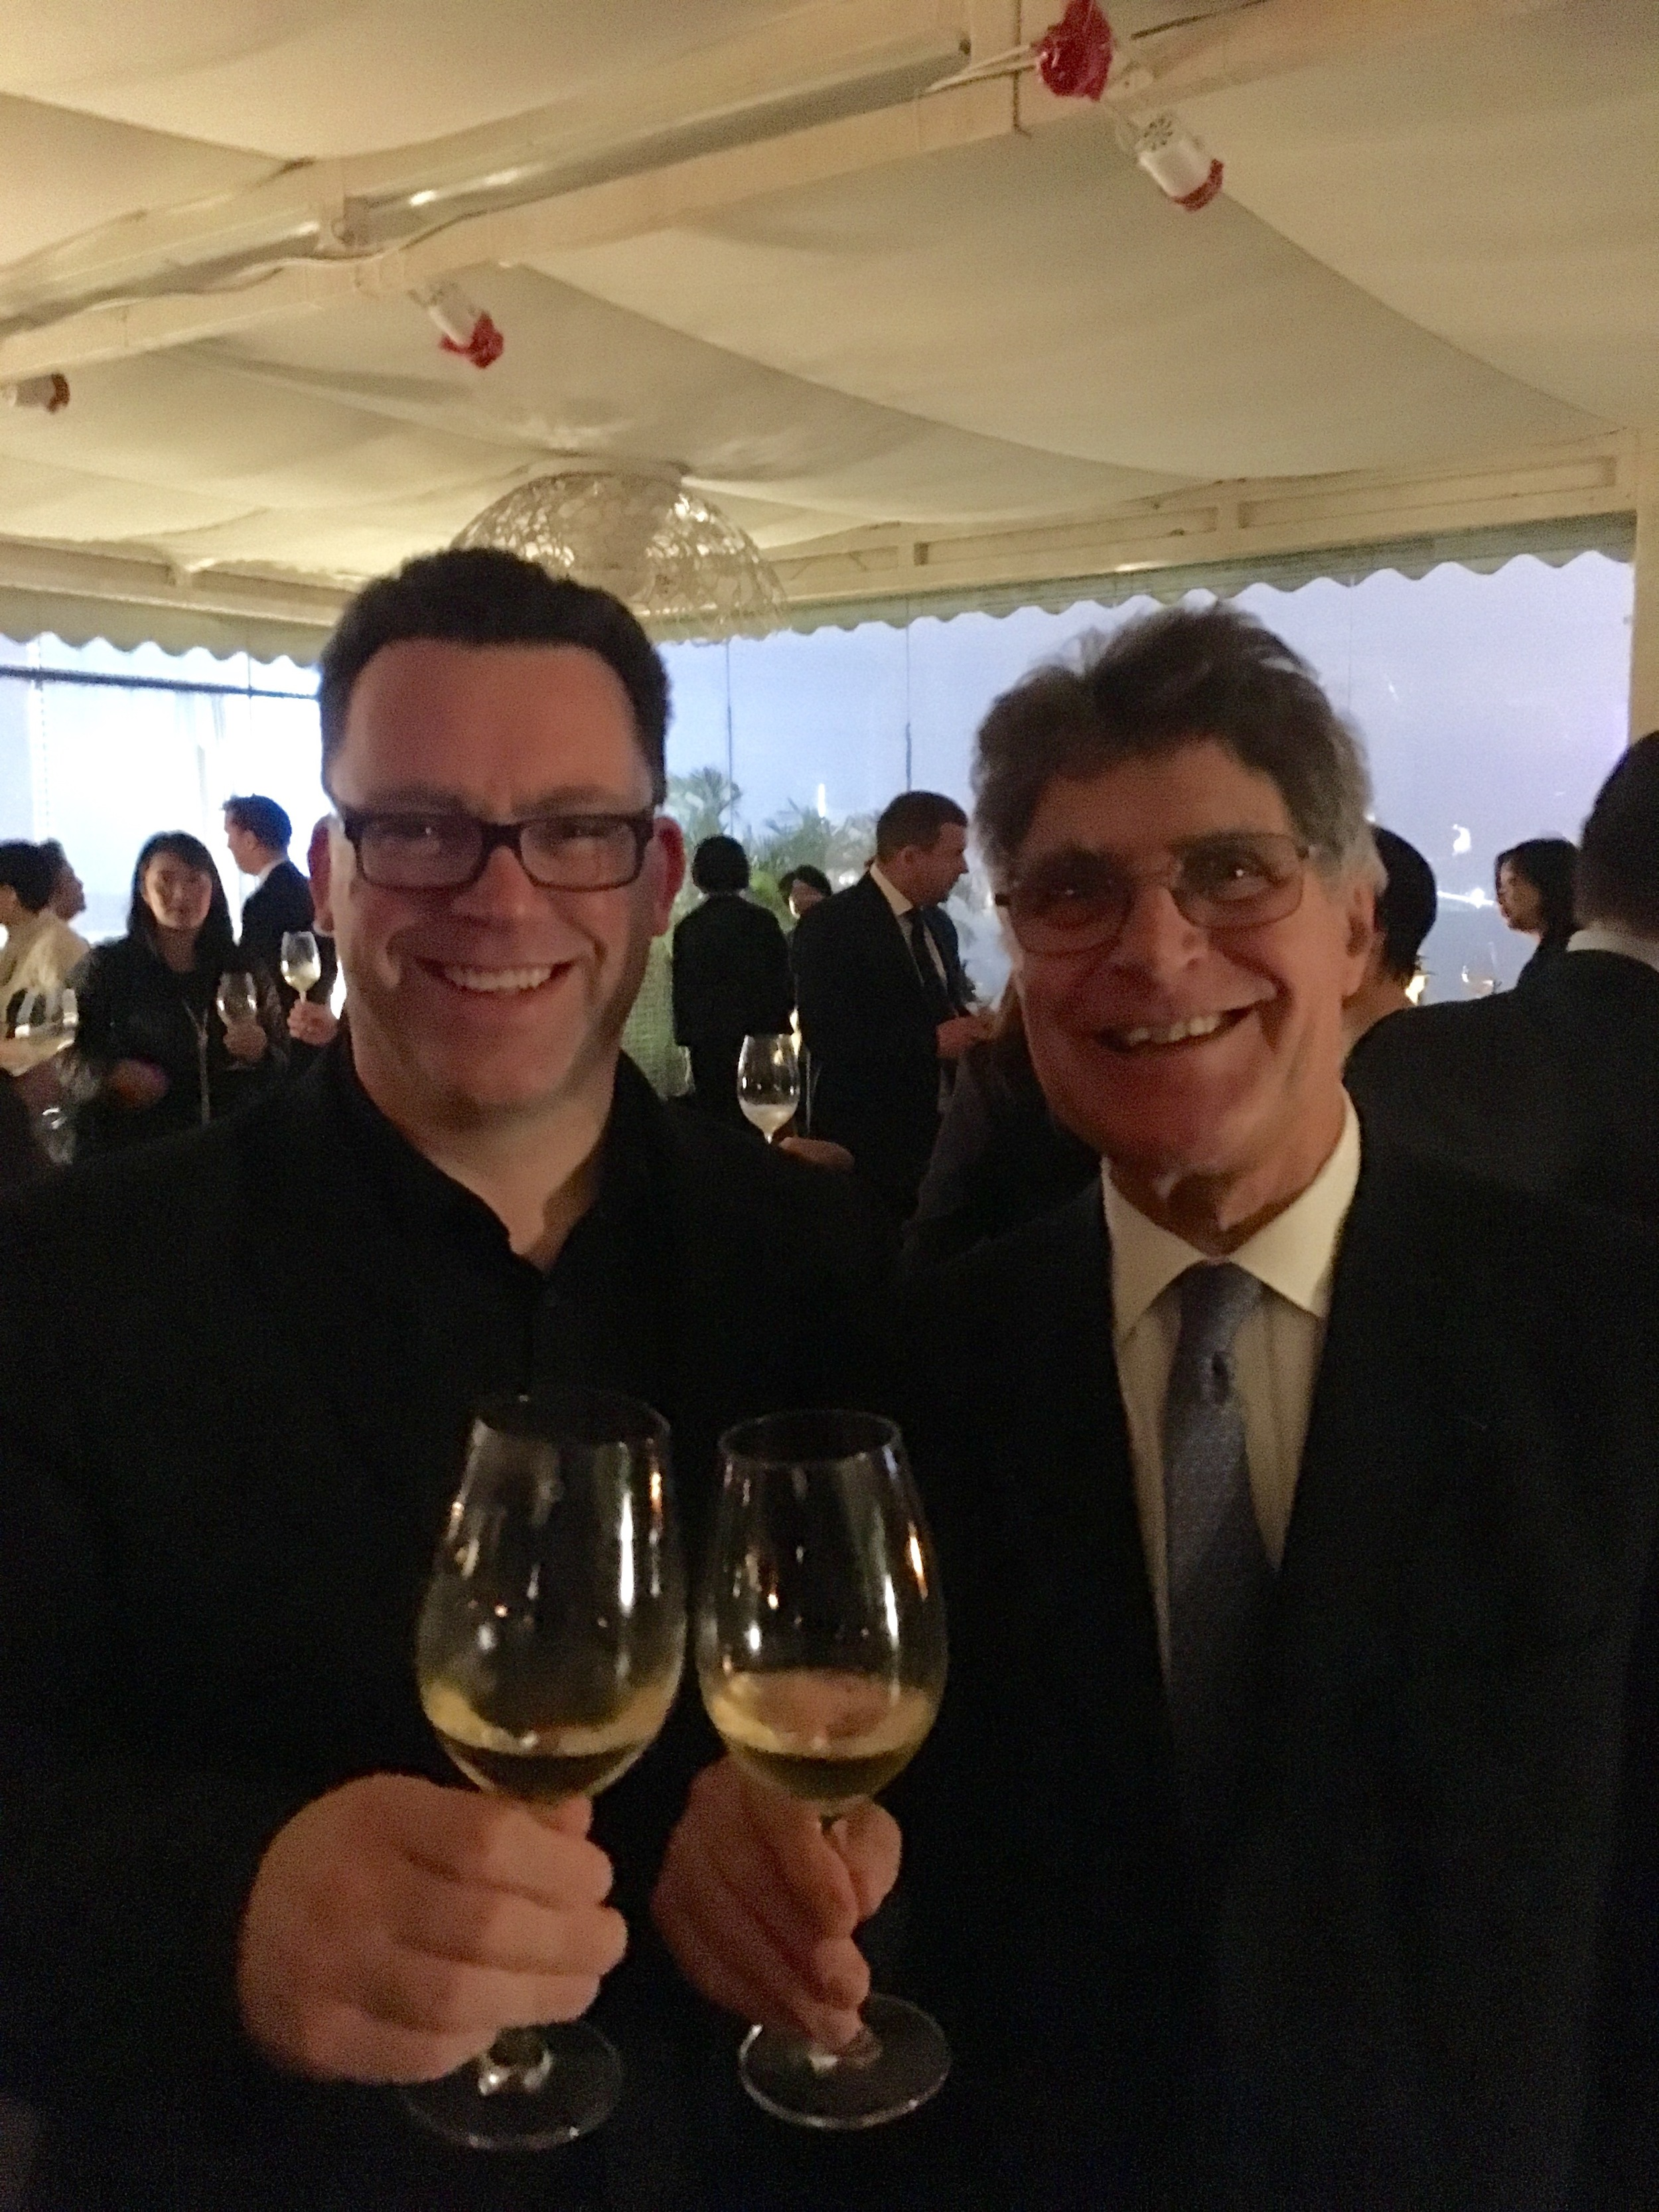 SHARING A GLASS WITH REMI KRUG